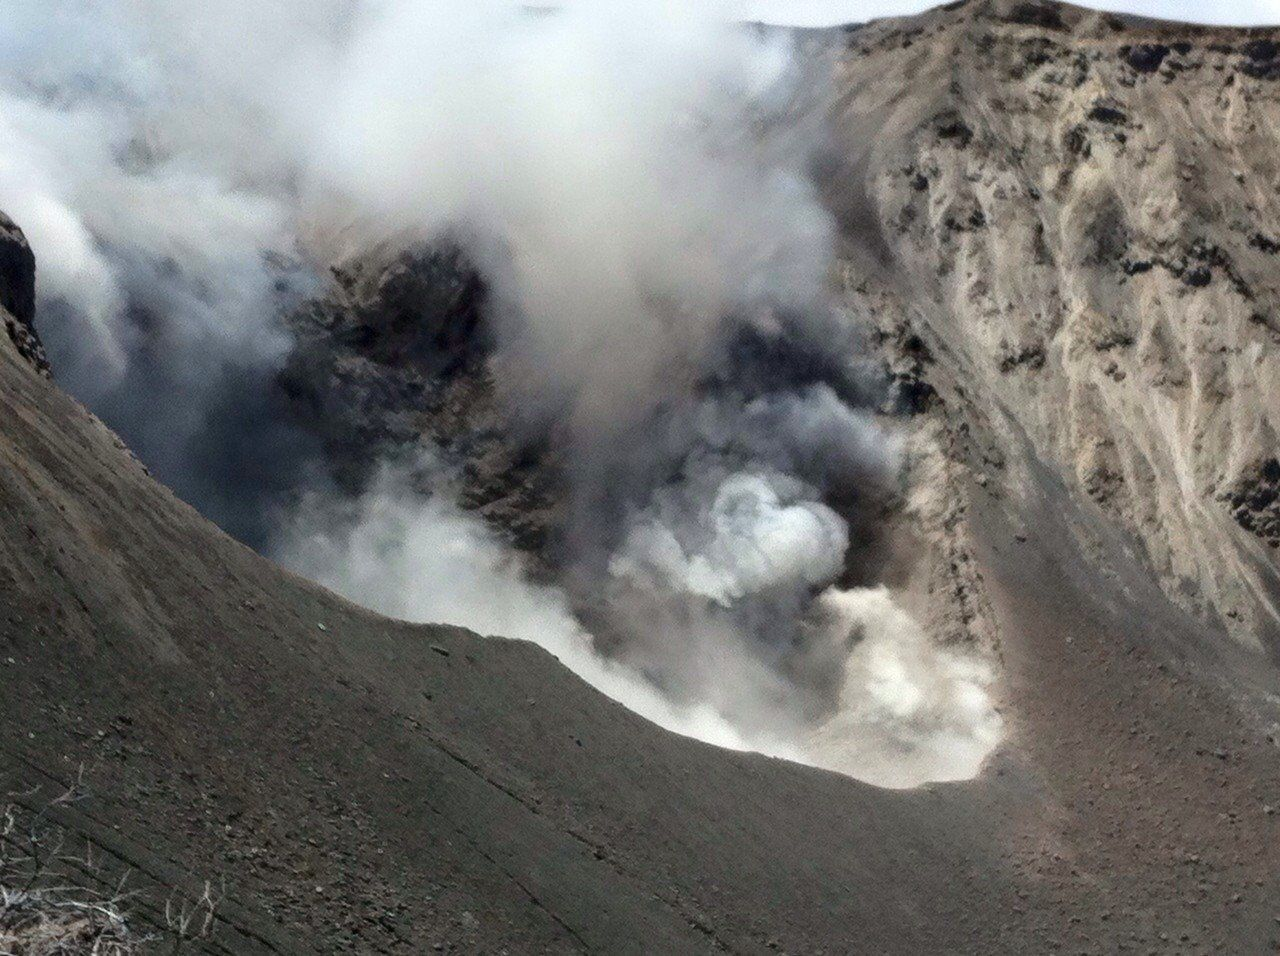 Turrialba : dégazage intense au crater activo - photo Carlos Ramirez / RSN